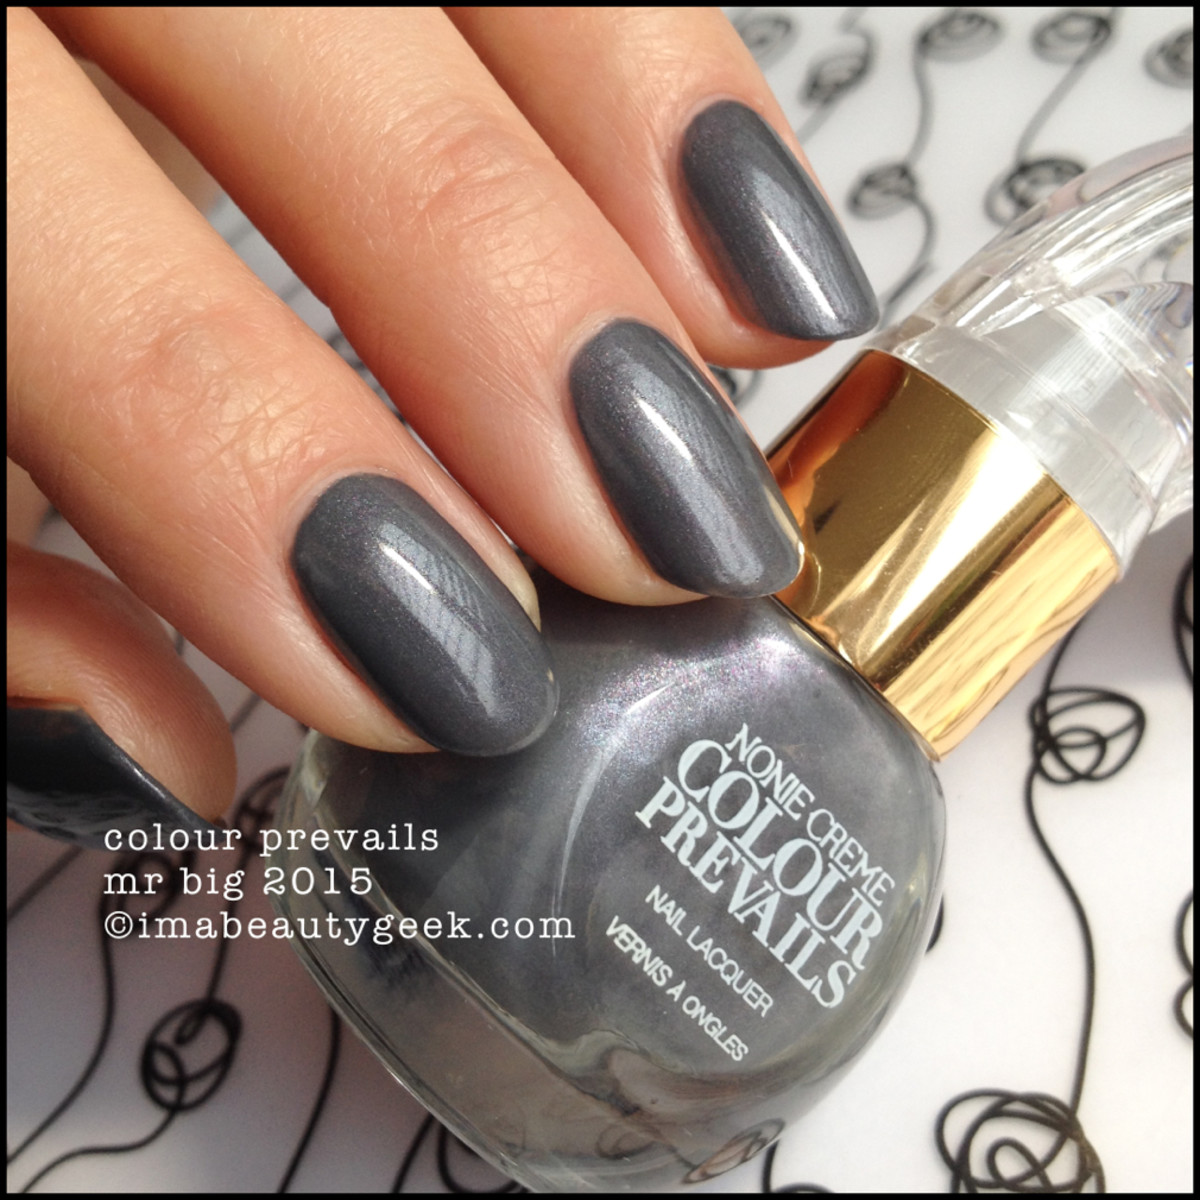 Colour Prevails Mr Big Nail Lacquer by Nonie Creme